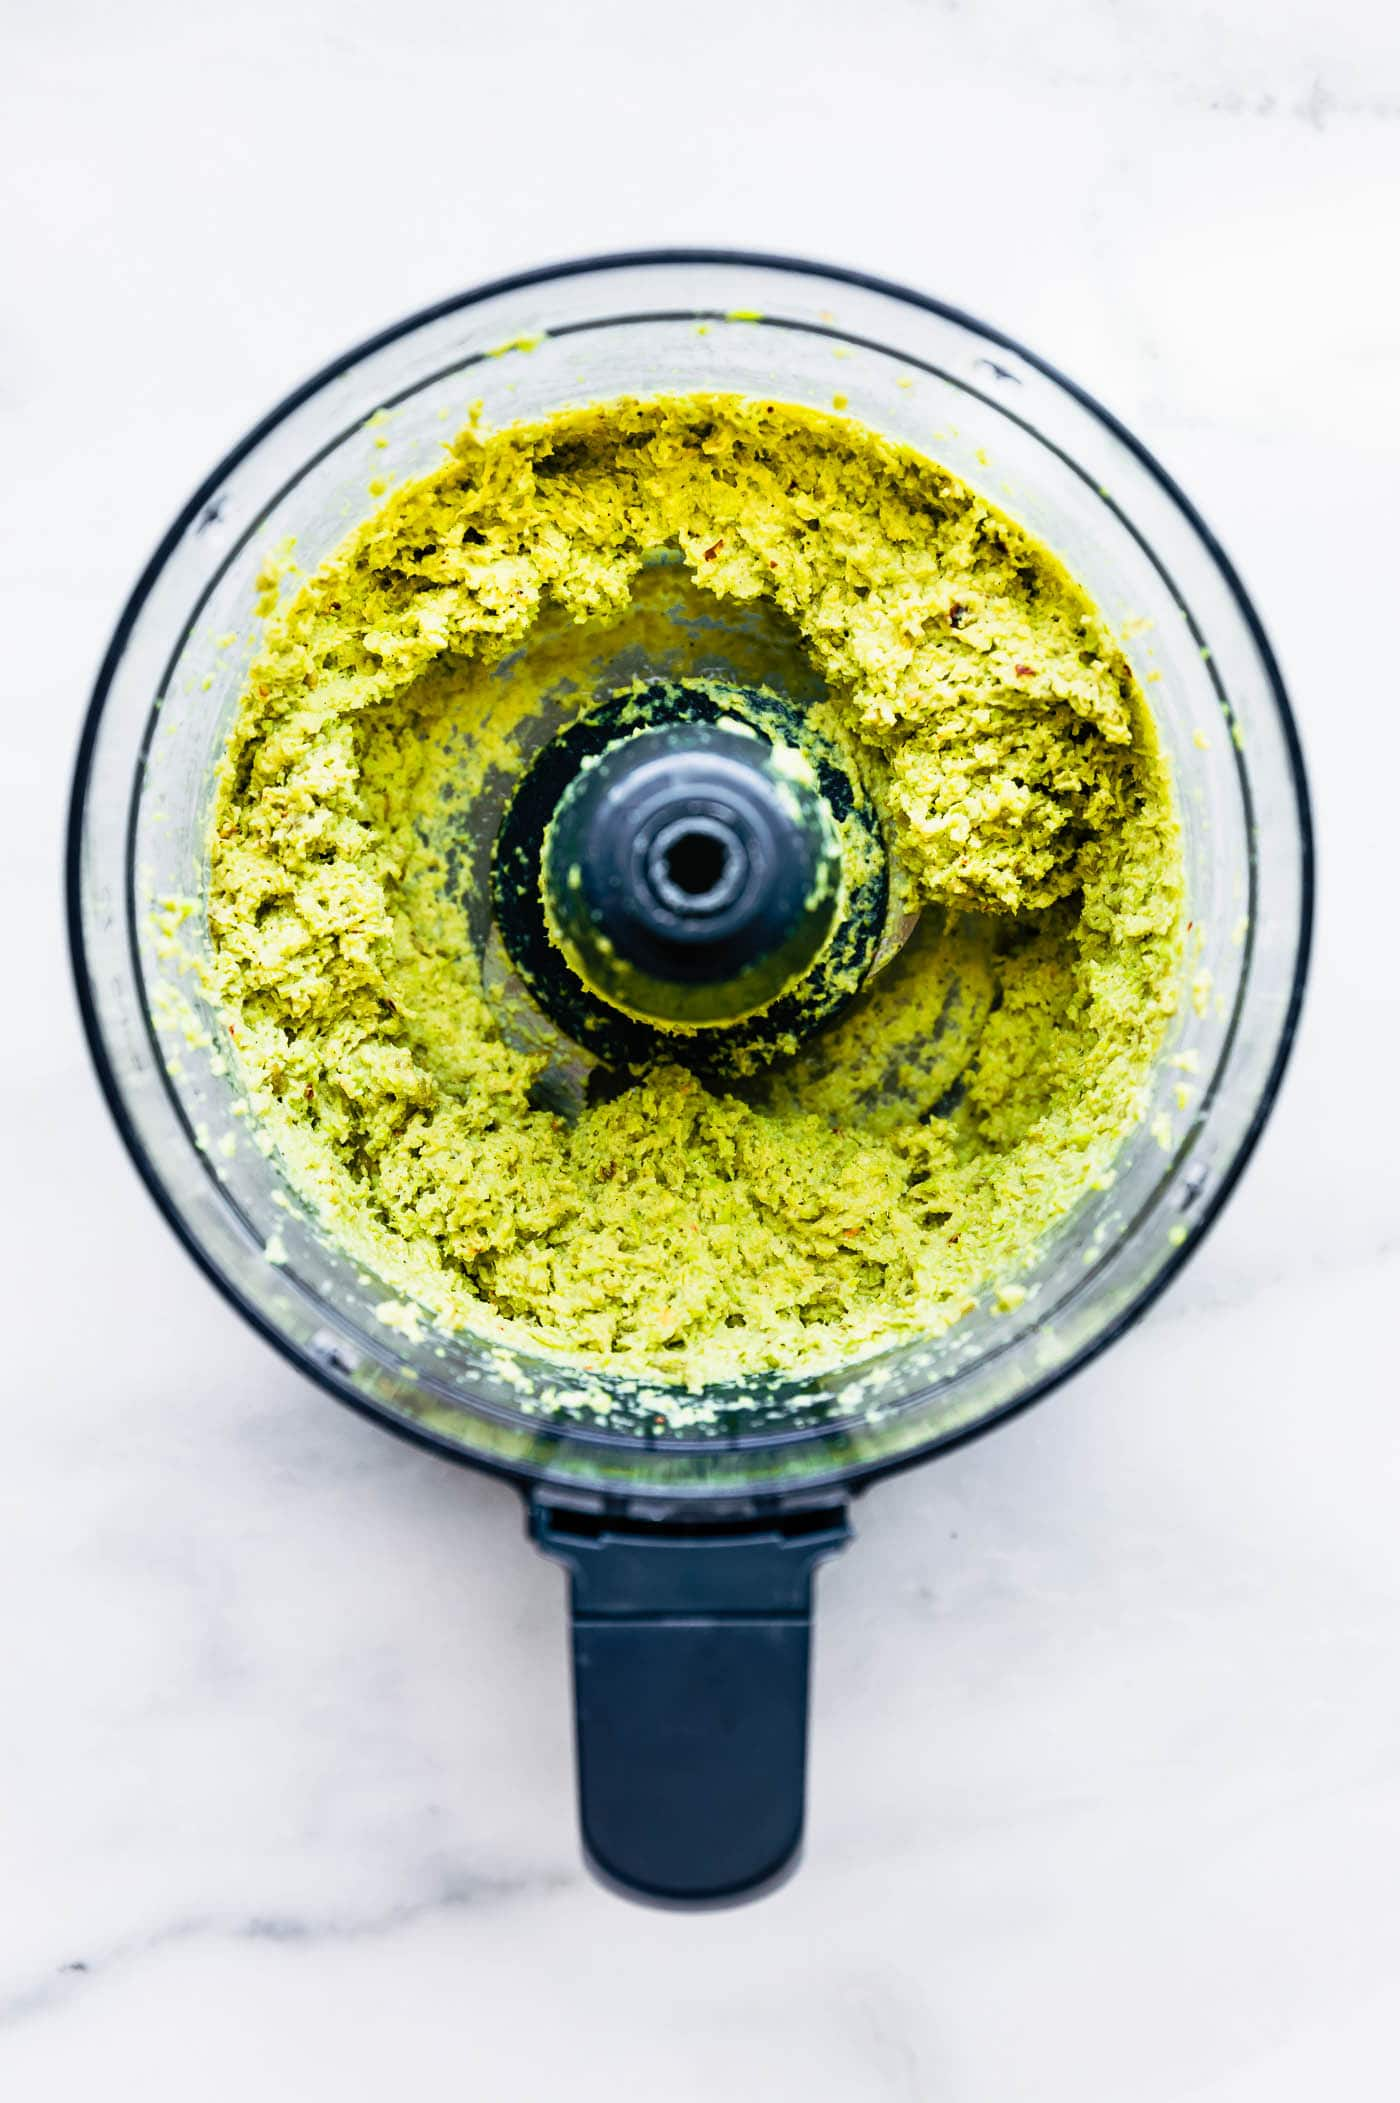 Quick VeganEdamame Pesto dip! A vegan pesto dip recipe that creamy, healthy, and flavorful. Nut free, rich in plant protein, and made with less than 6 ingredients. Use this edamame pesto dip on a sandwiches, in pasta, or make into wholesome appetizer dip. #dip #pesto #vegan #healthy #appetizer #snack #dairyfree